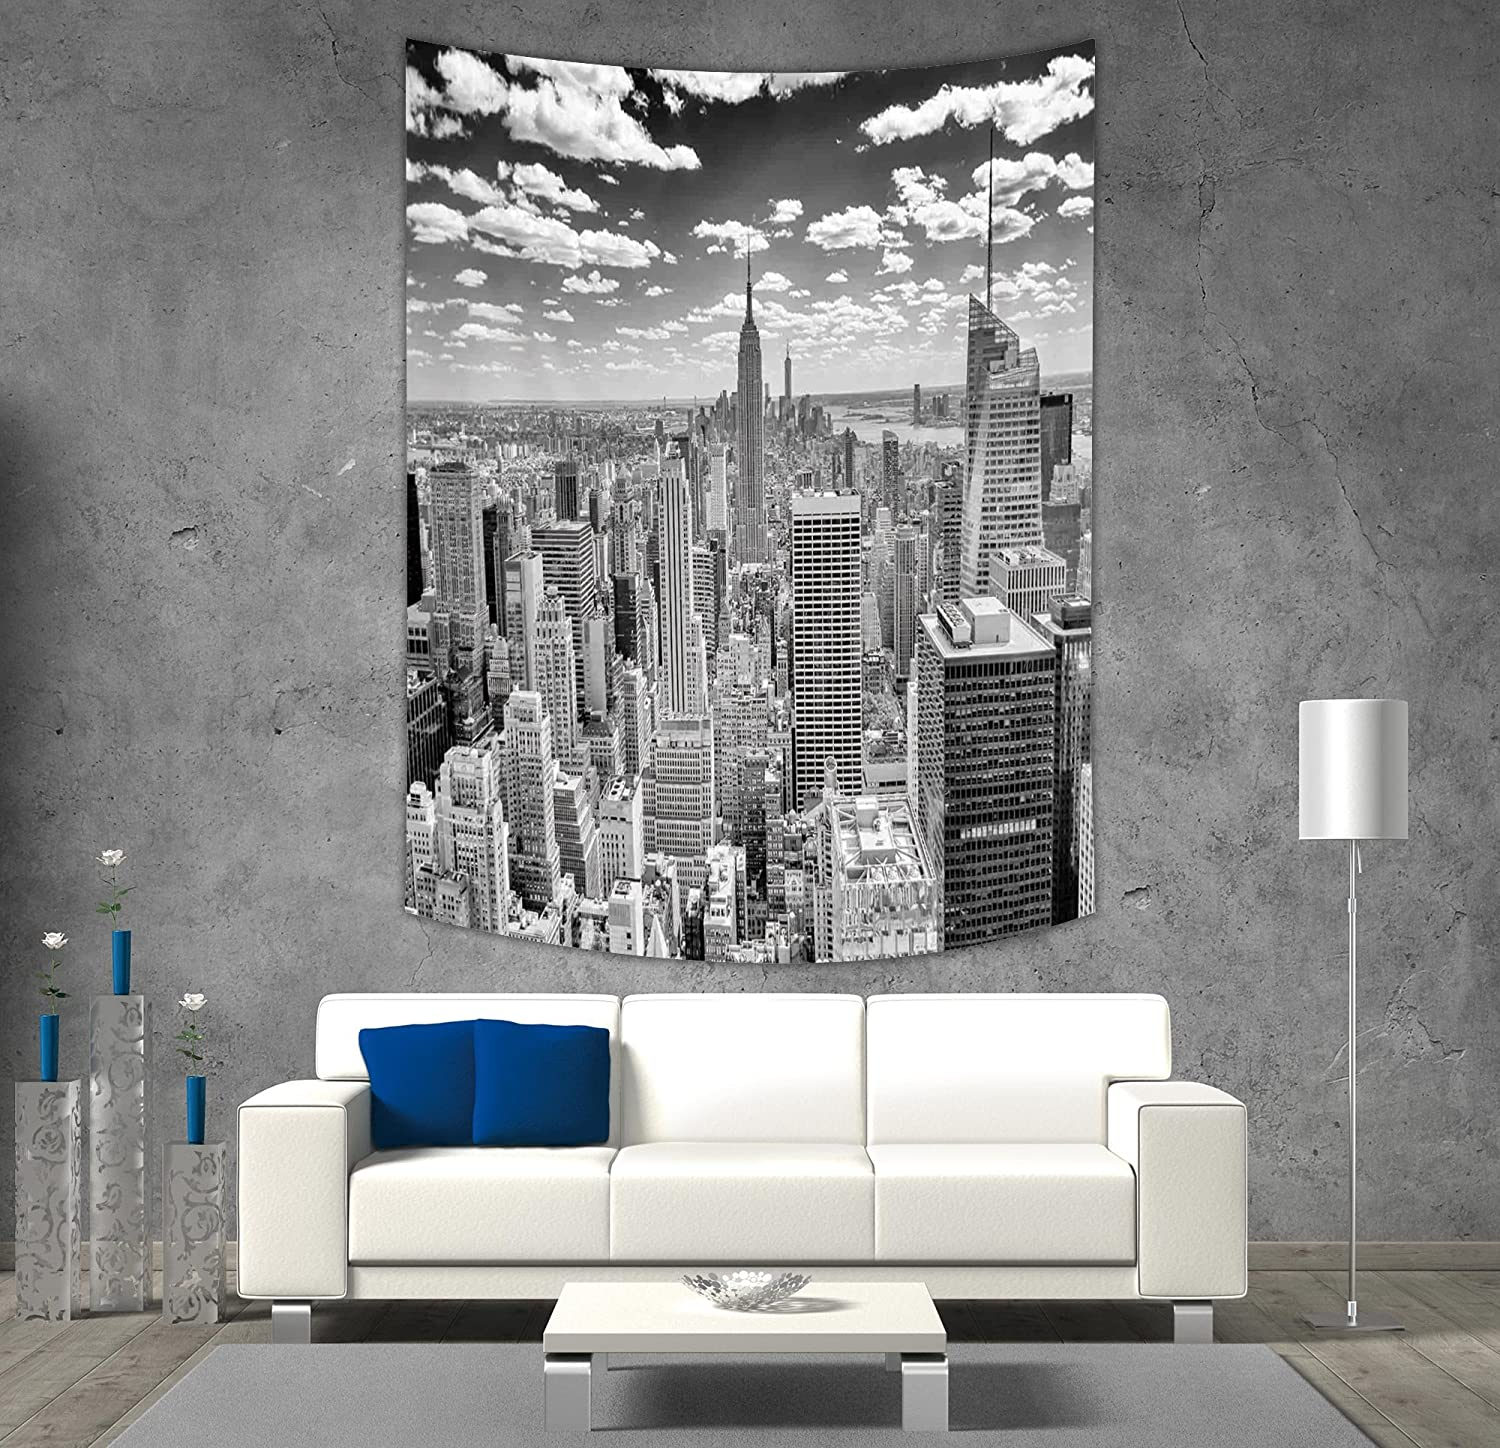 iPrint Polyester Tapestry Wall Hanging,New York,NYC over Manhattan from Top of Skyscrapers Urban Global Culture Artful City Panorama,Grey,Wall Decor for Bedroom Living Room Dorm